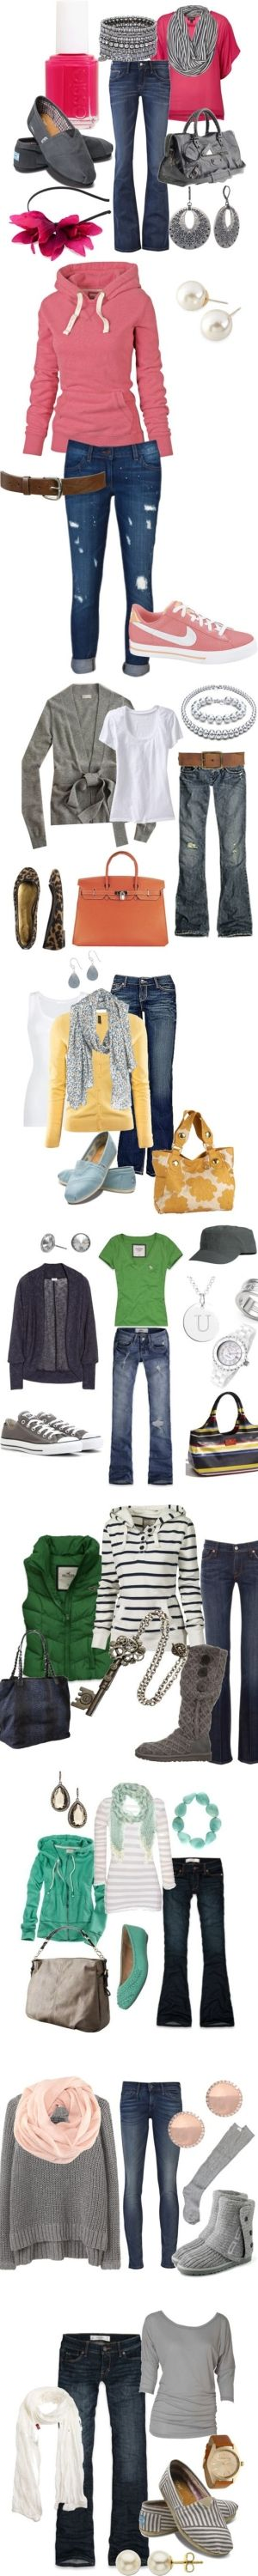 I love all these fun ideas for Clothes Combos